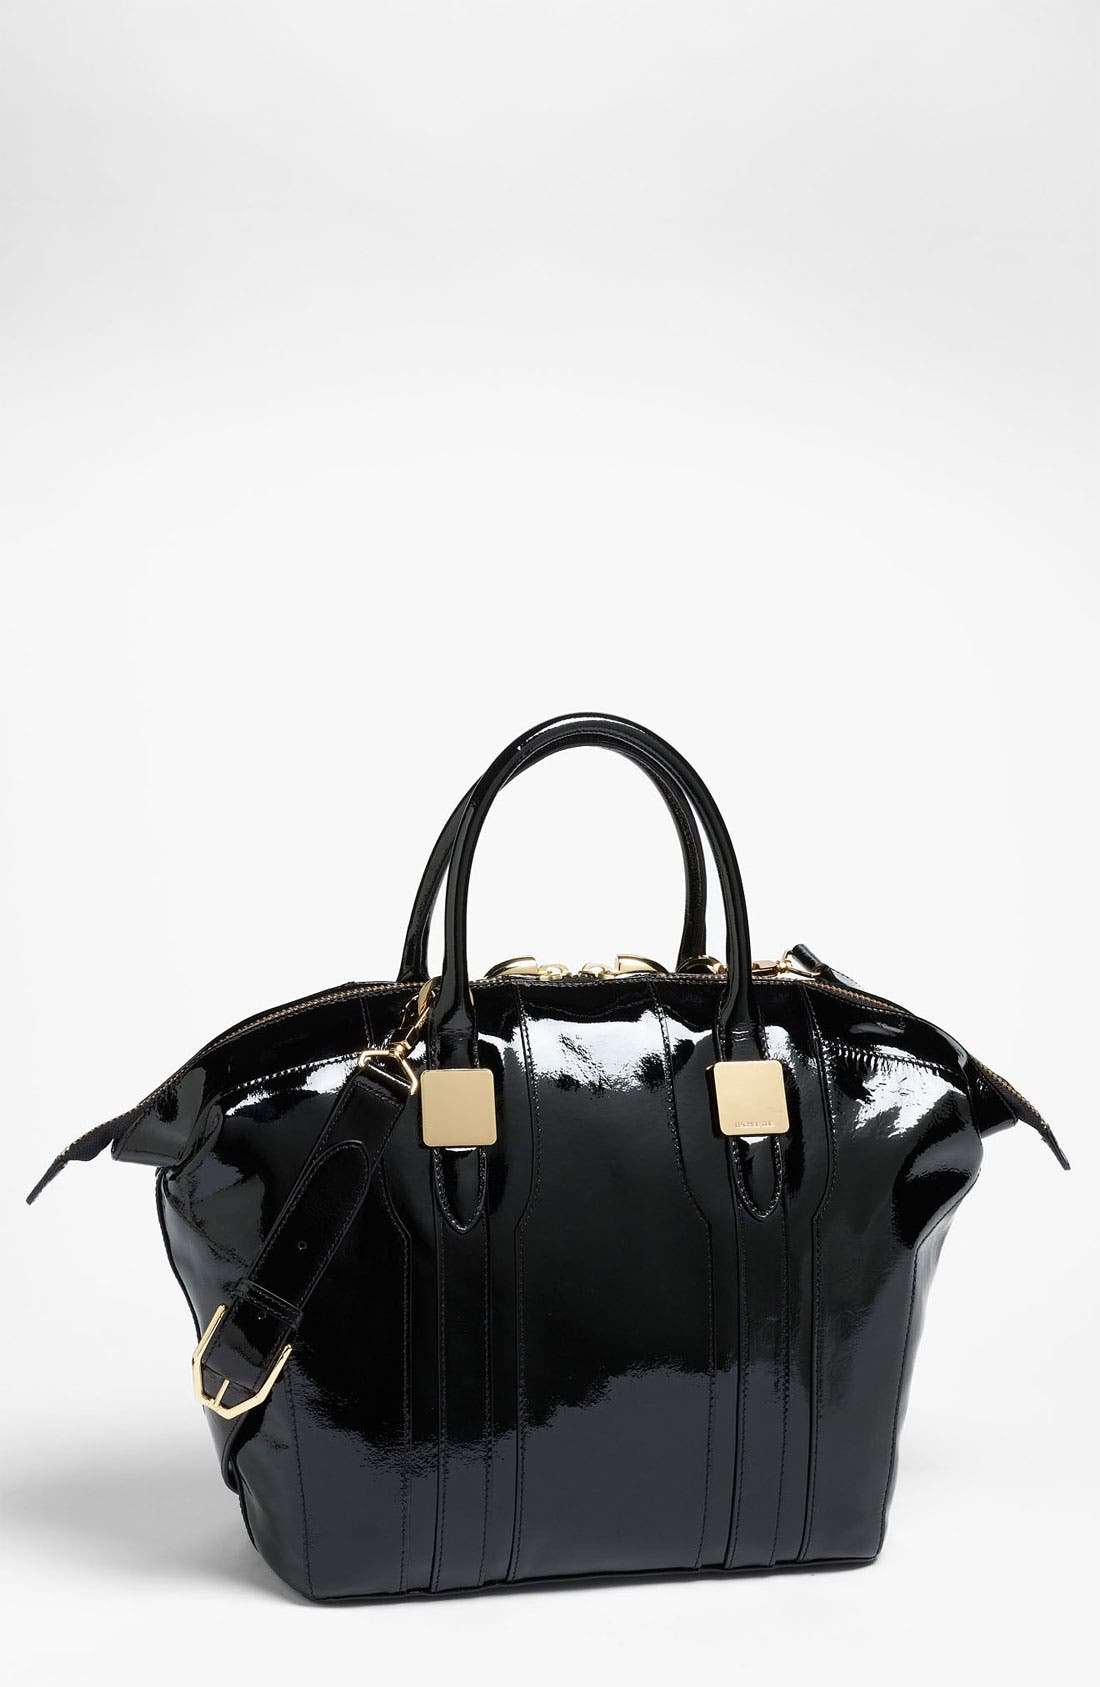 Alternate Image 1 Selected - Rachel Zoe 'Morrison - Medium' Patent Leather Tote